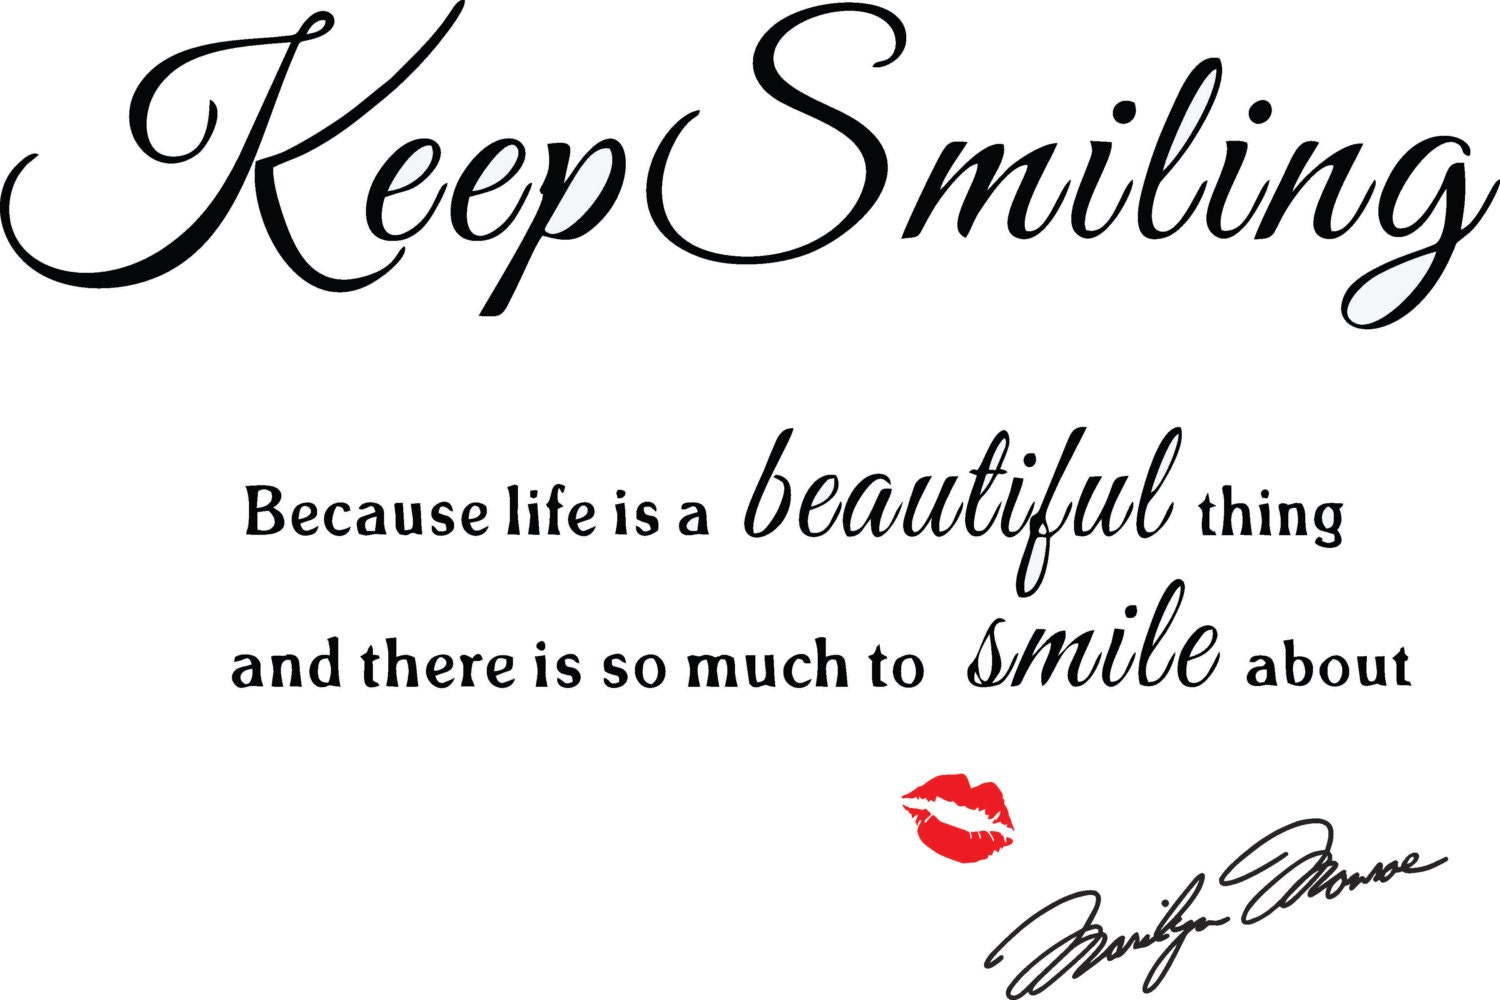 Marilyn Monroe Wall Decal: Keep Smiling Decal Home Decor